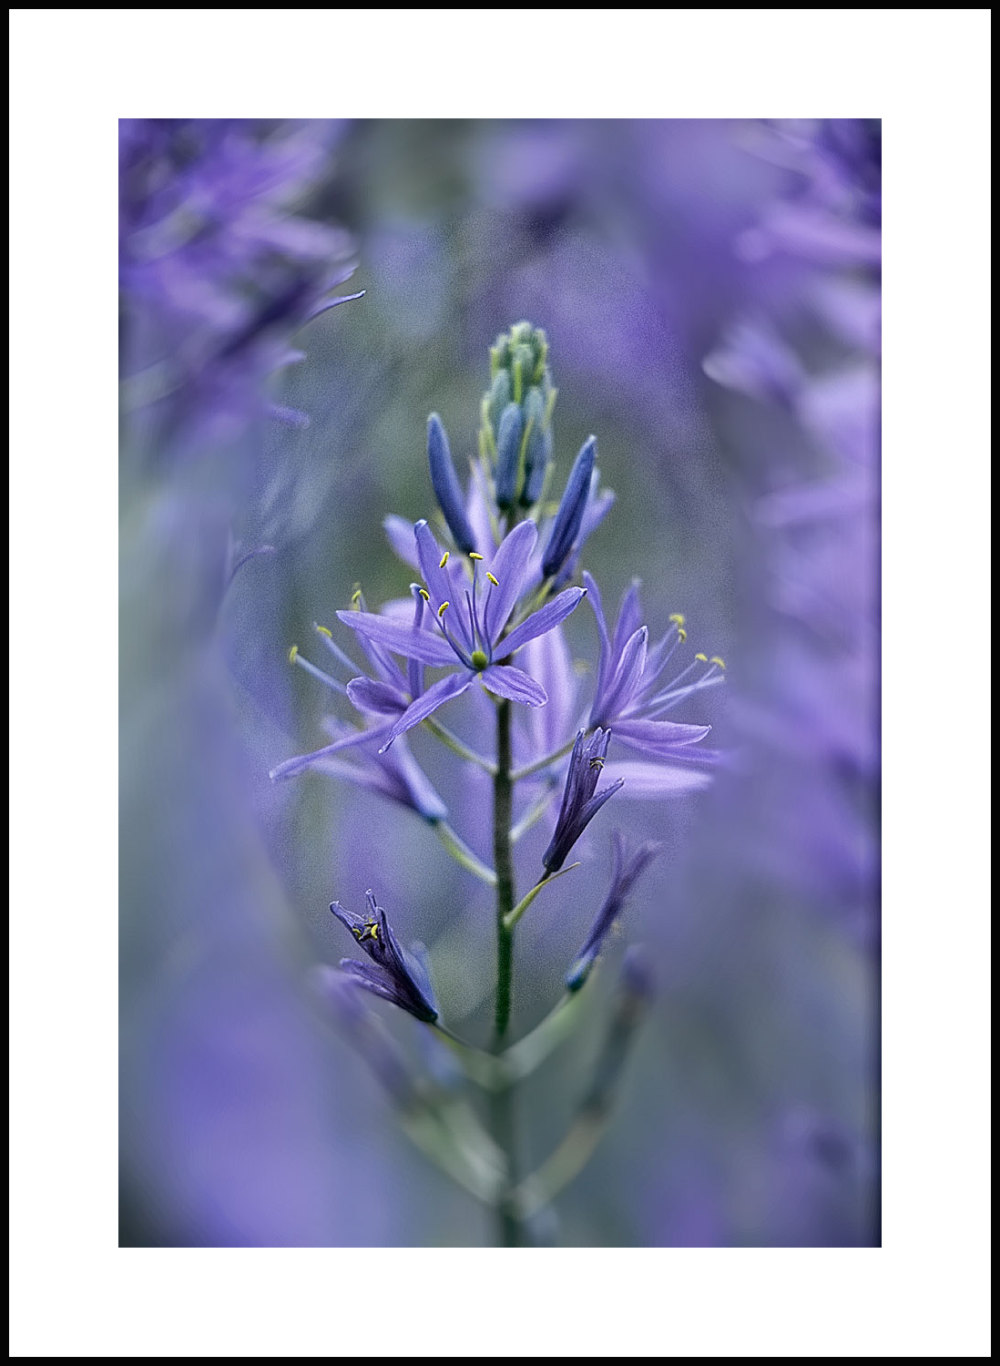 camassia bloom viewed through a mass of bloom